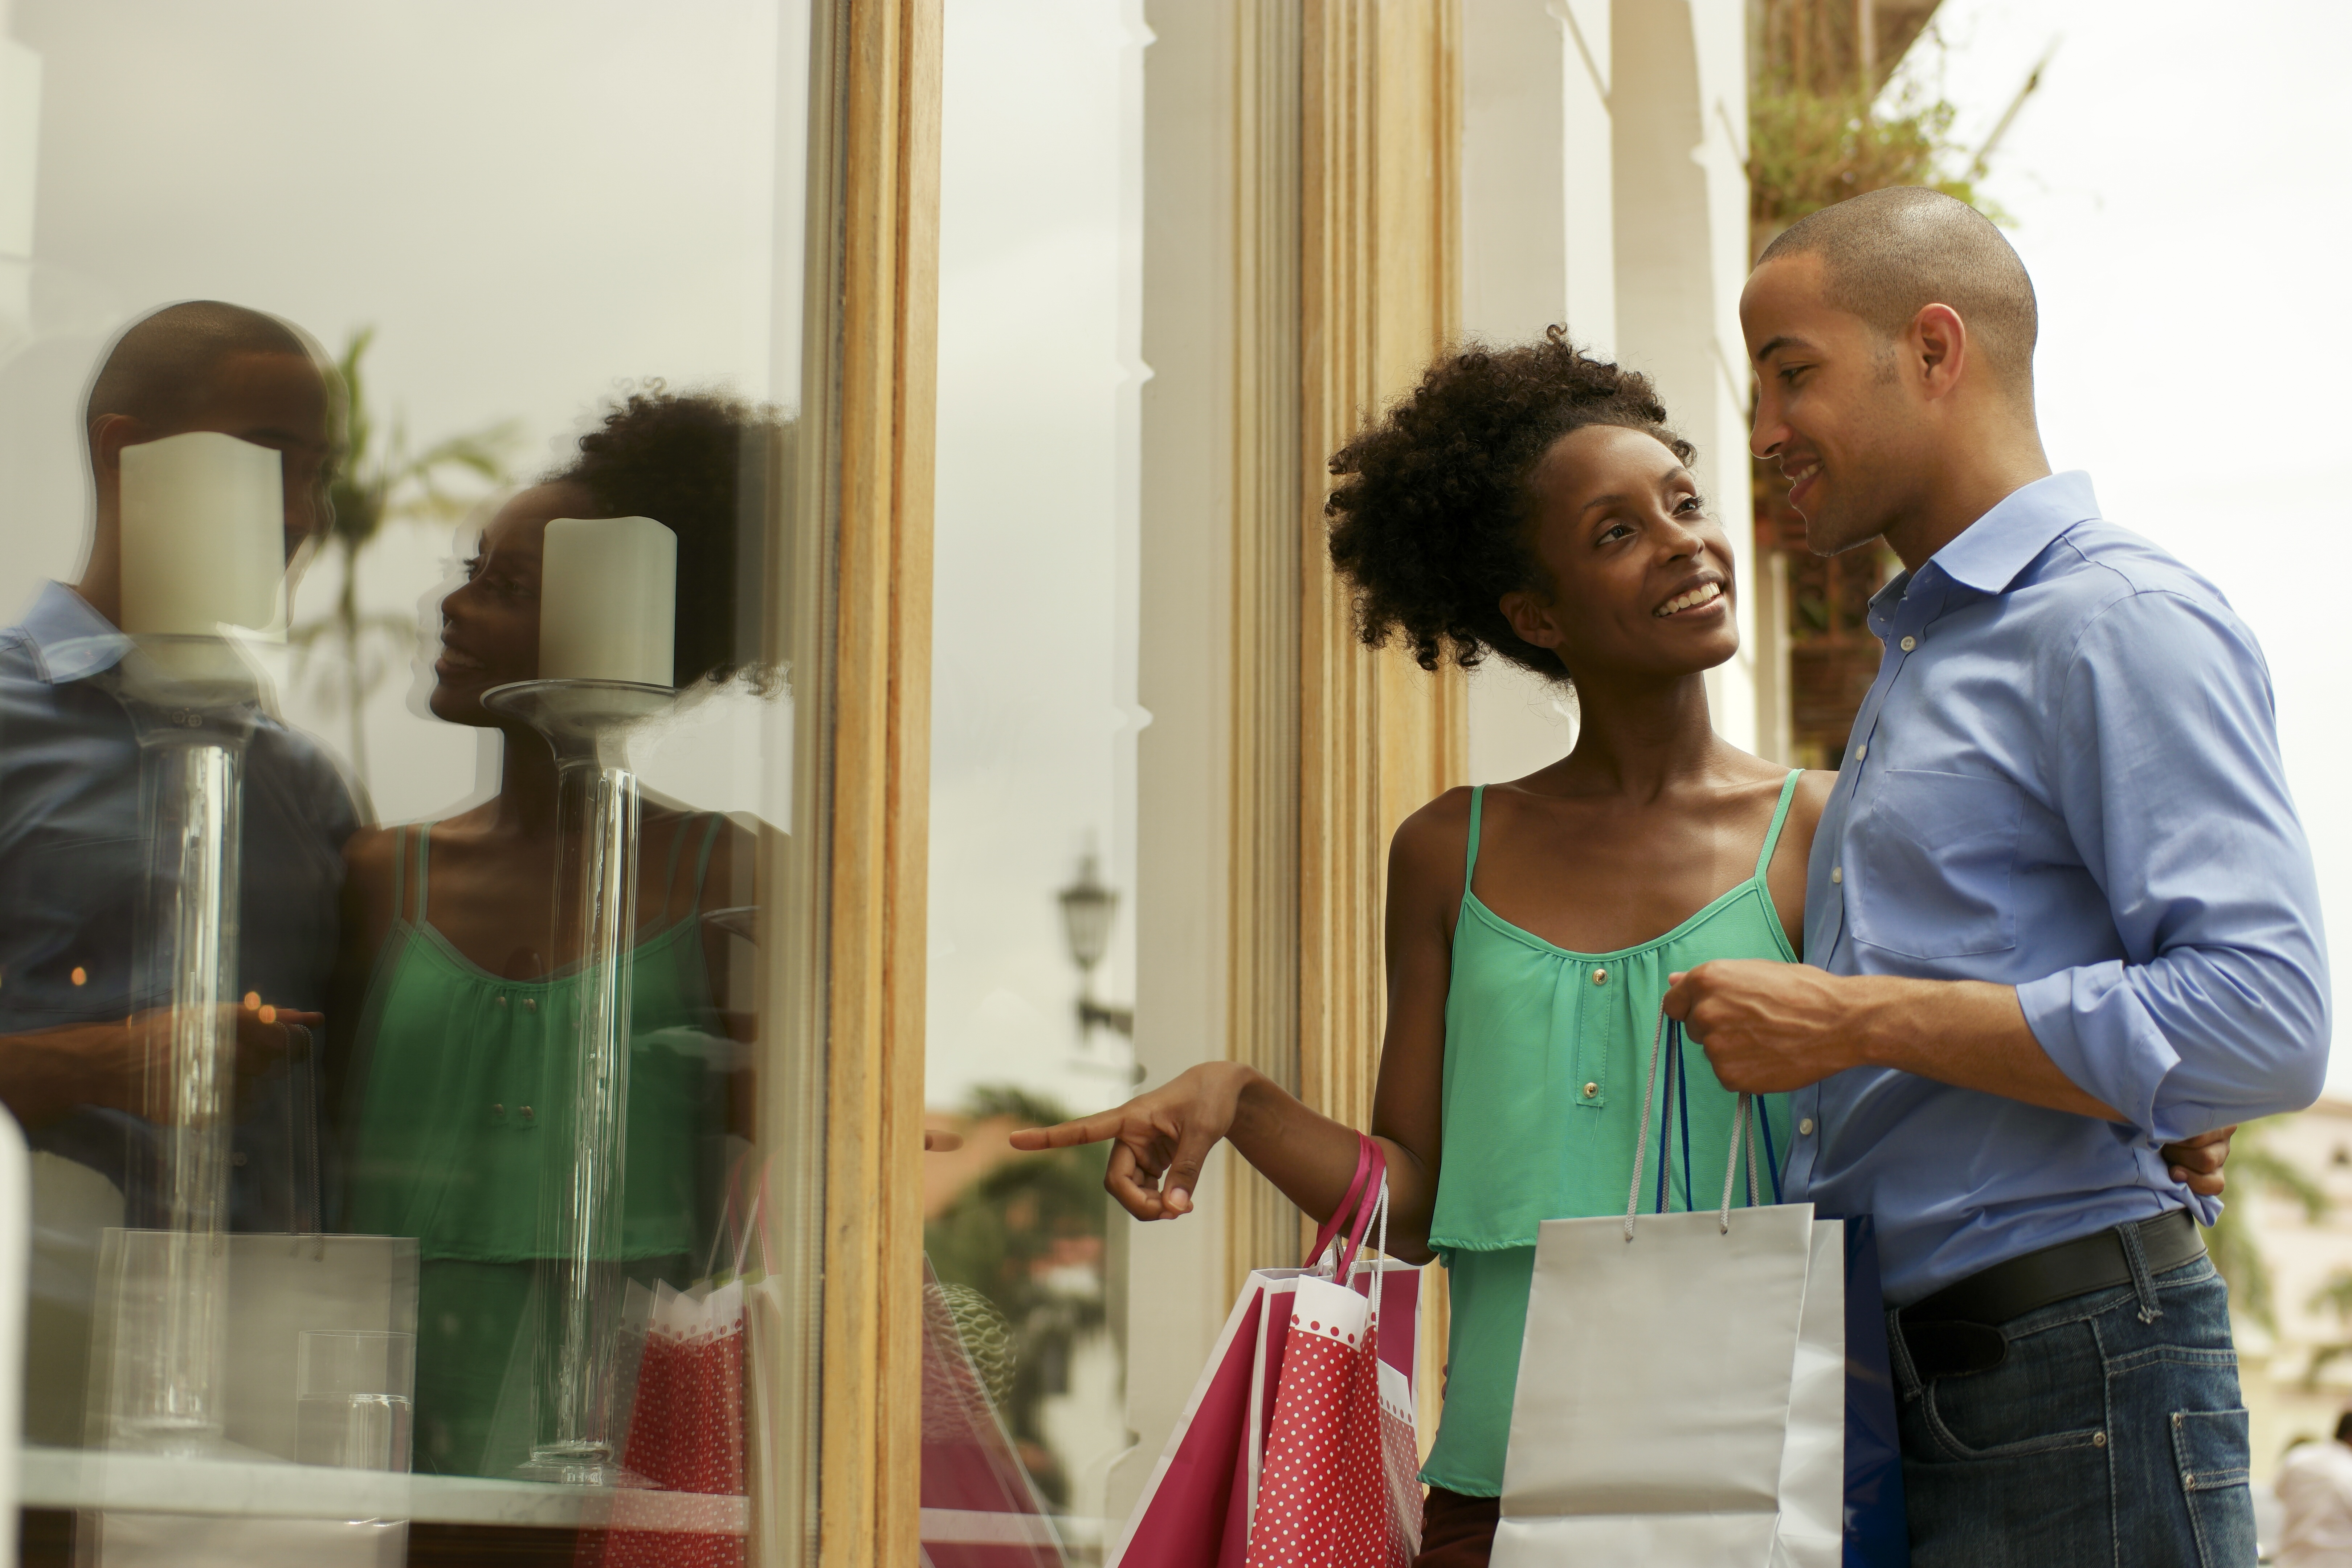 Create a retail experience for the 5 senses